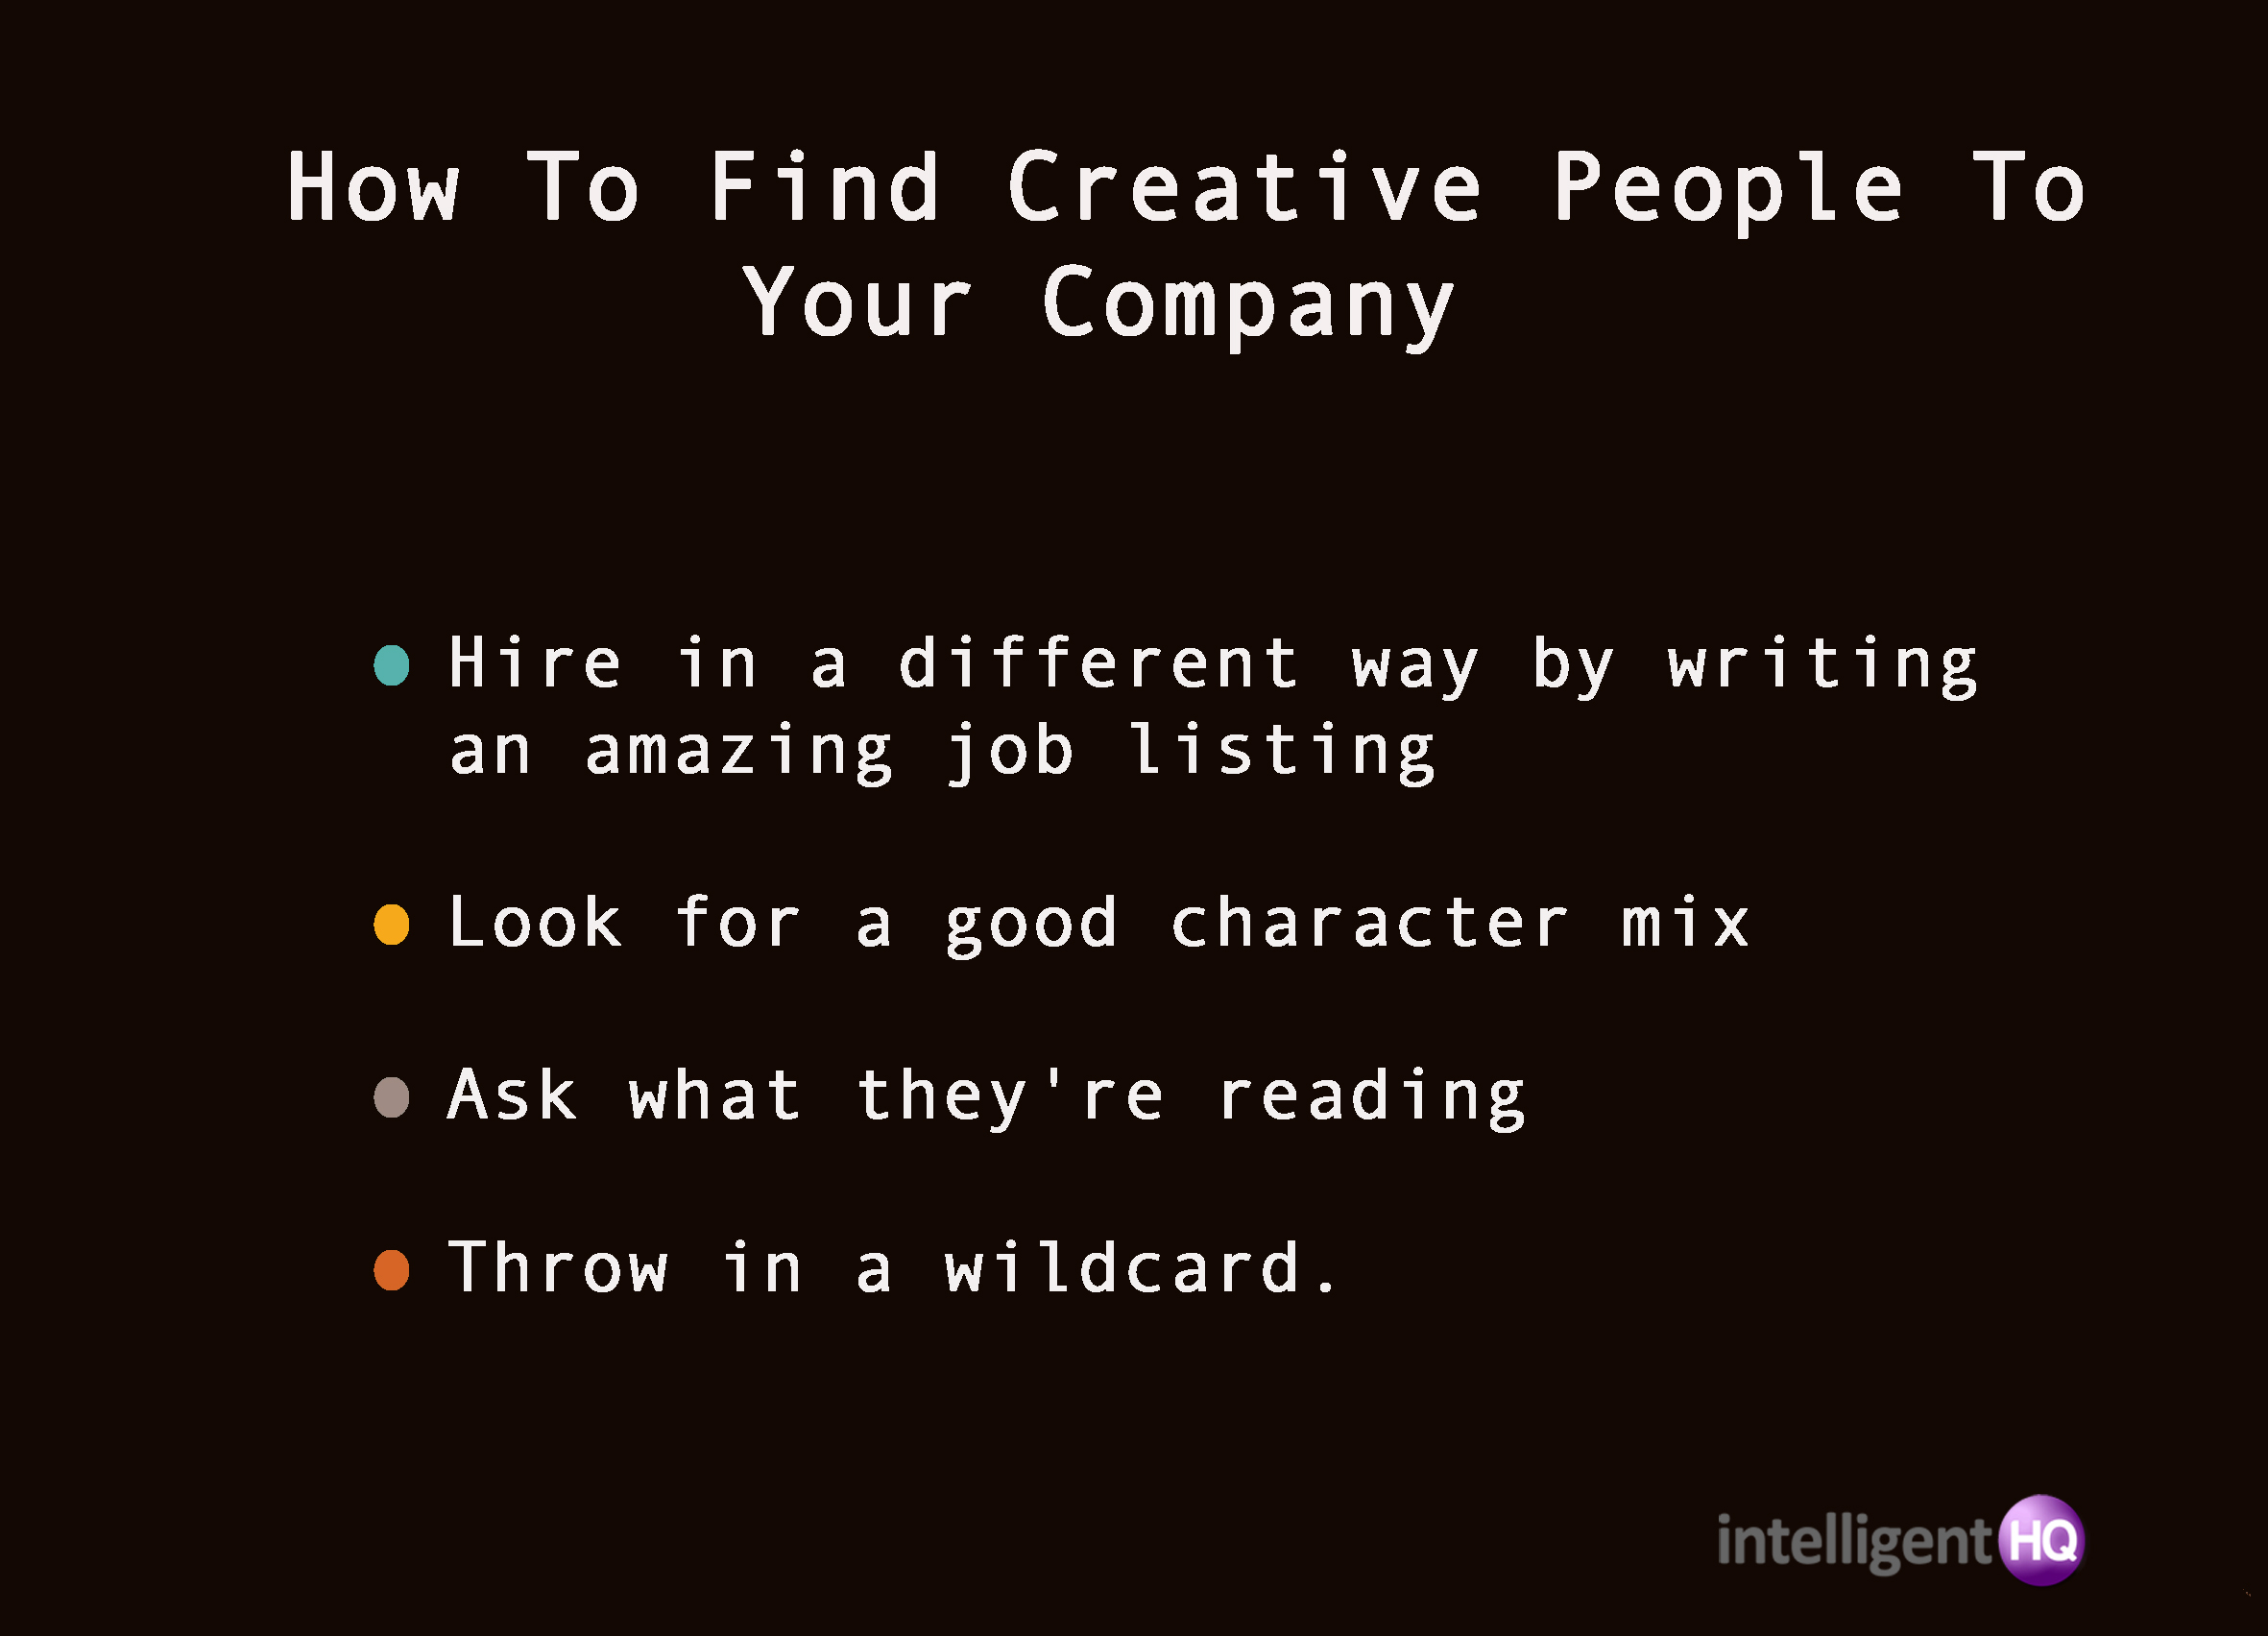 How to find creative people to your company Intelligenthq